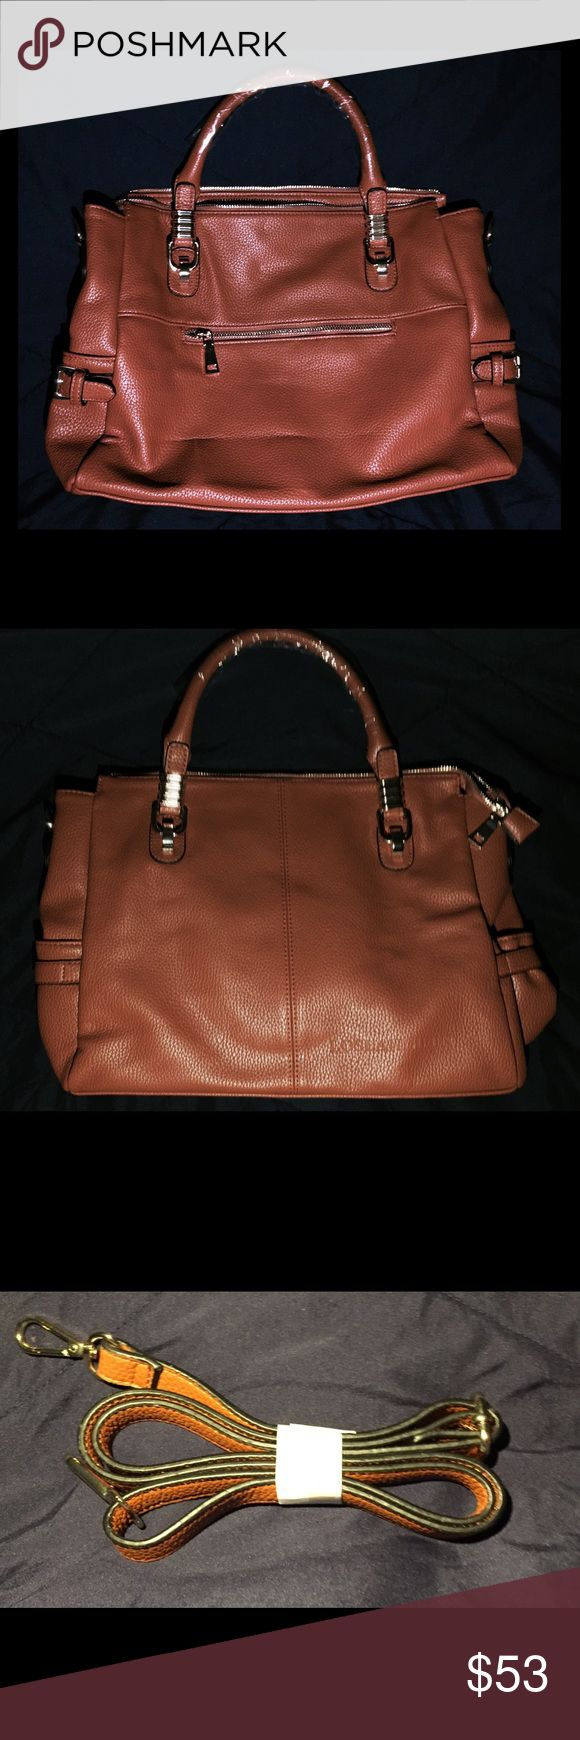 Manmade Leather Brown Shoulder Bag A beautiful day-to-evening brown shoulder bag. Each zipper has golden finishing. (The shine on the handle is just glare from a plastic cover). 30% OFF SPECIAL SALE! Bags Shoulder Bags